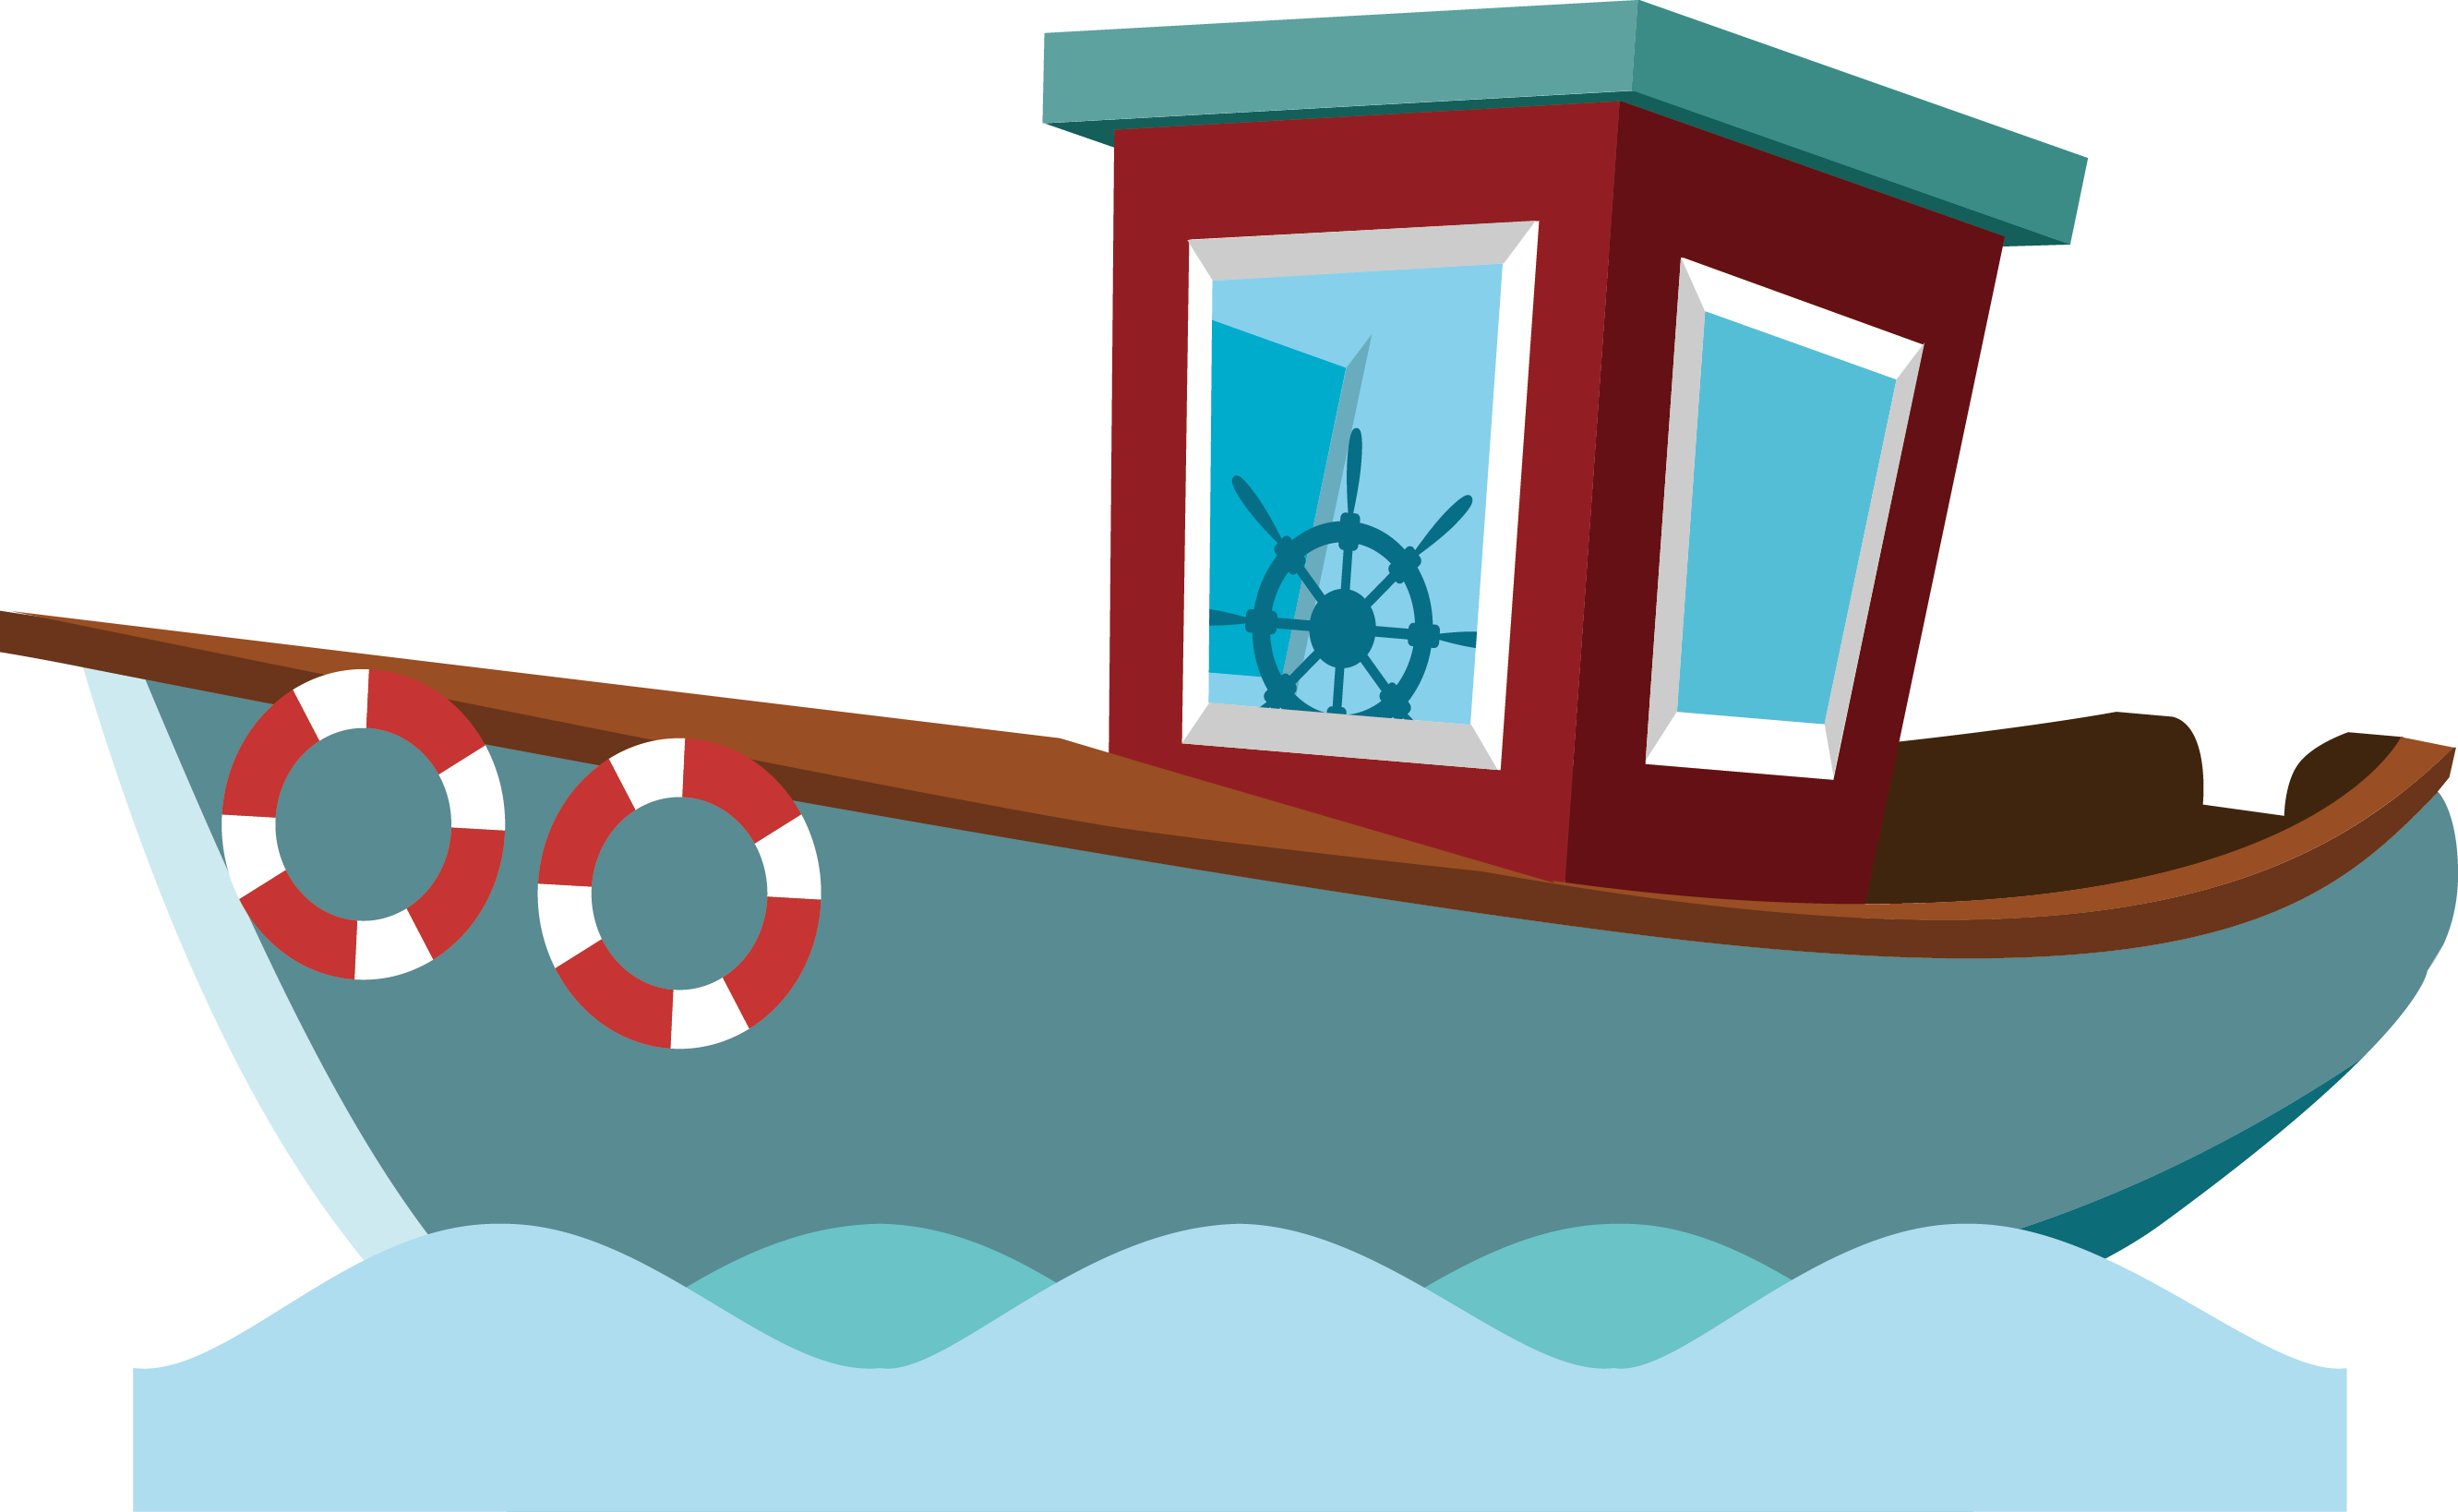 Clipart Boat Fishing Vessel Clipart Boat Fishing Vessel Transparent Free For Download On Webstockreview 2020